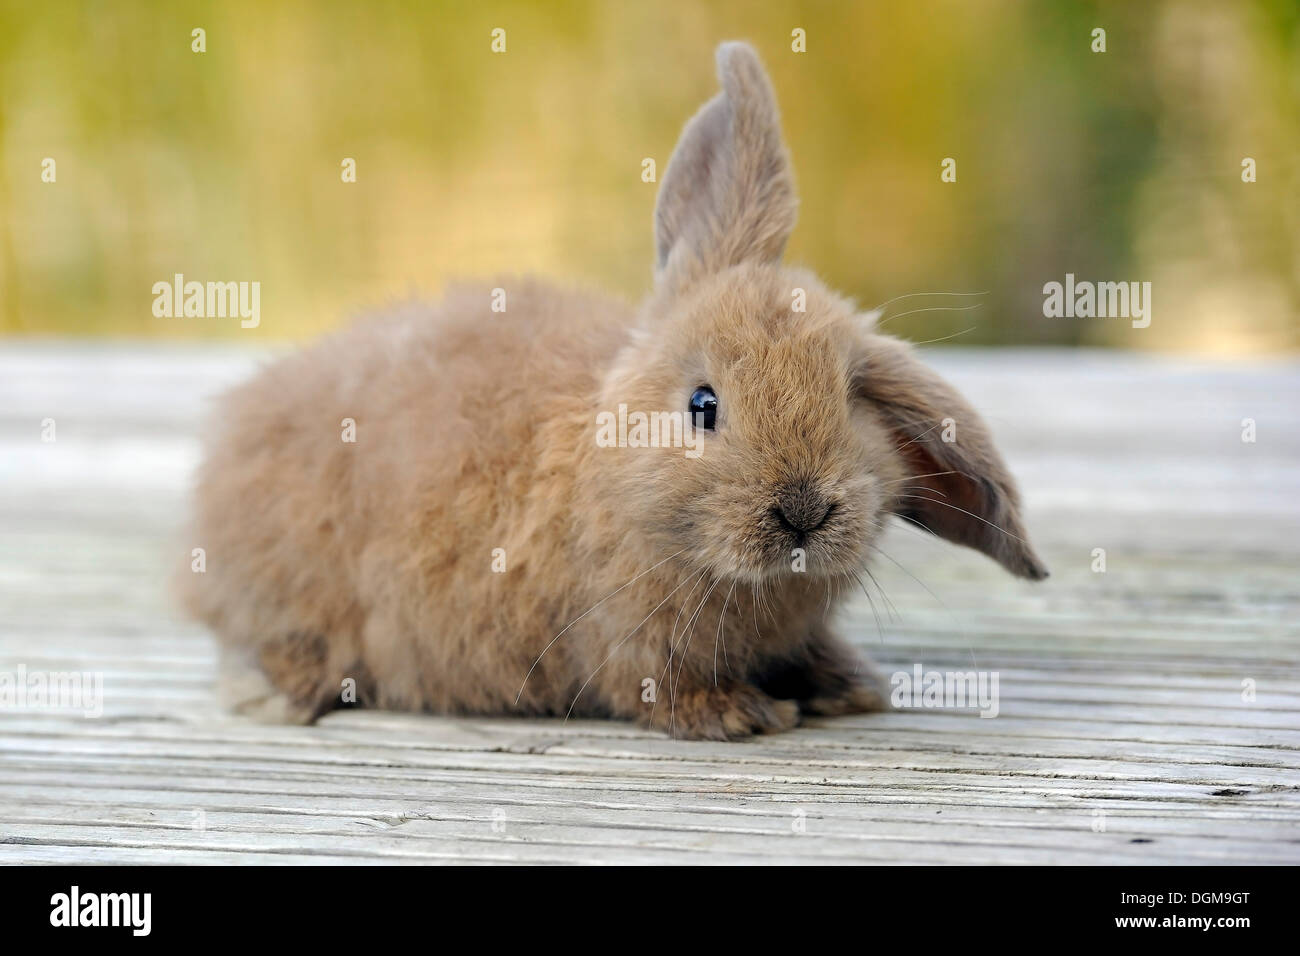 Young Domestic Rabbit (Oryctolagus cuniculus forma domestica) with floppy ears - Stock Image